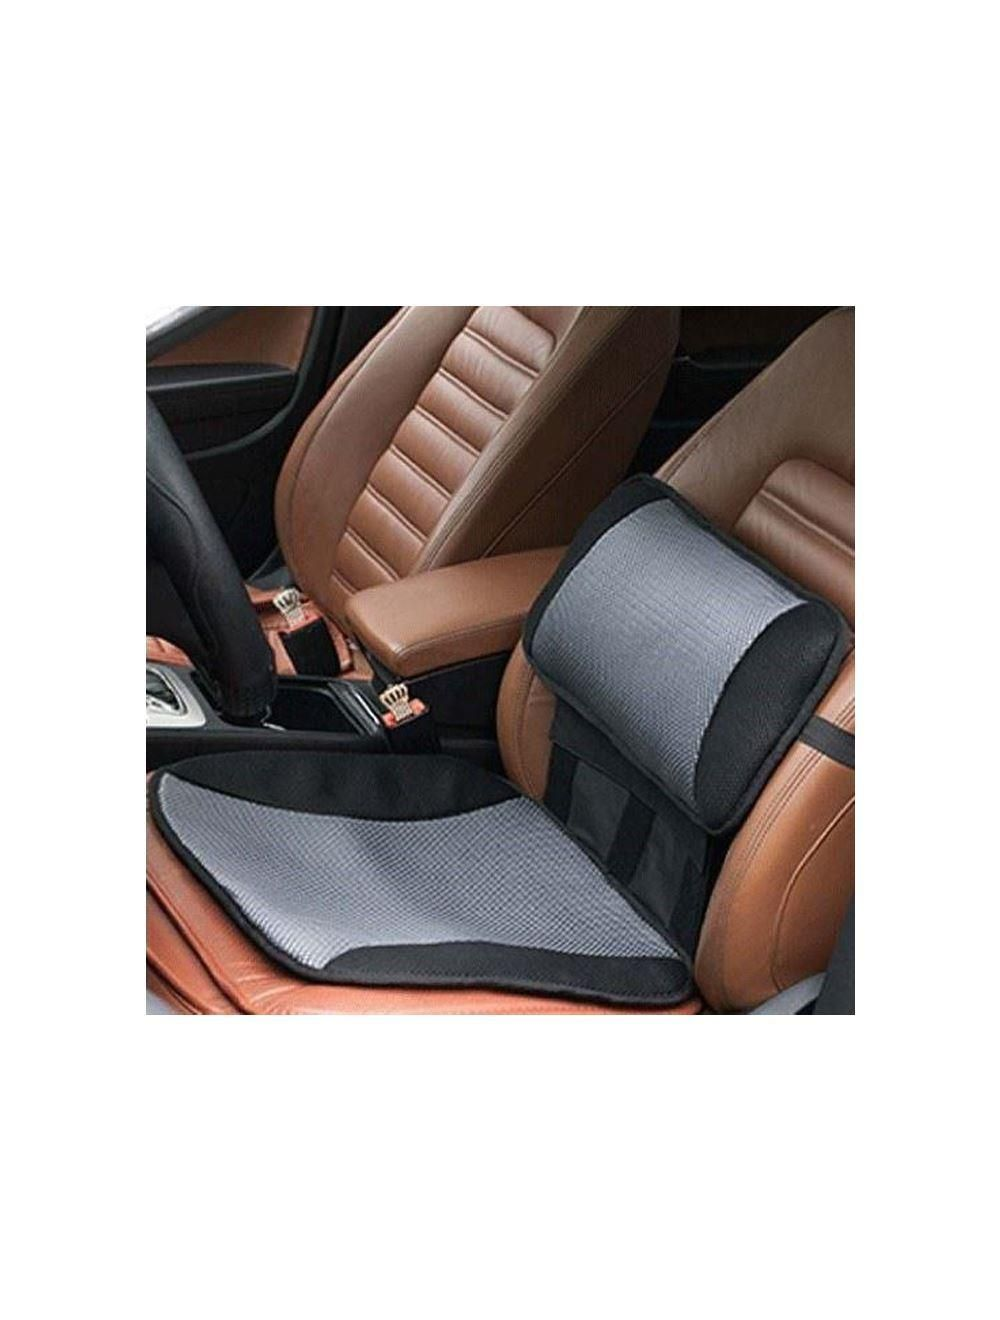 car cooling lumbar back support pillow seat cushion office chair home comfort